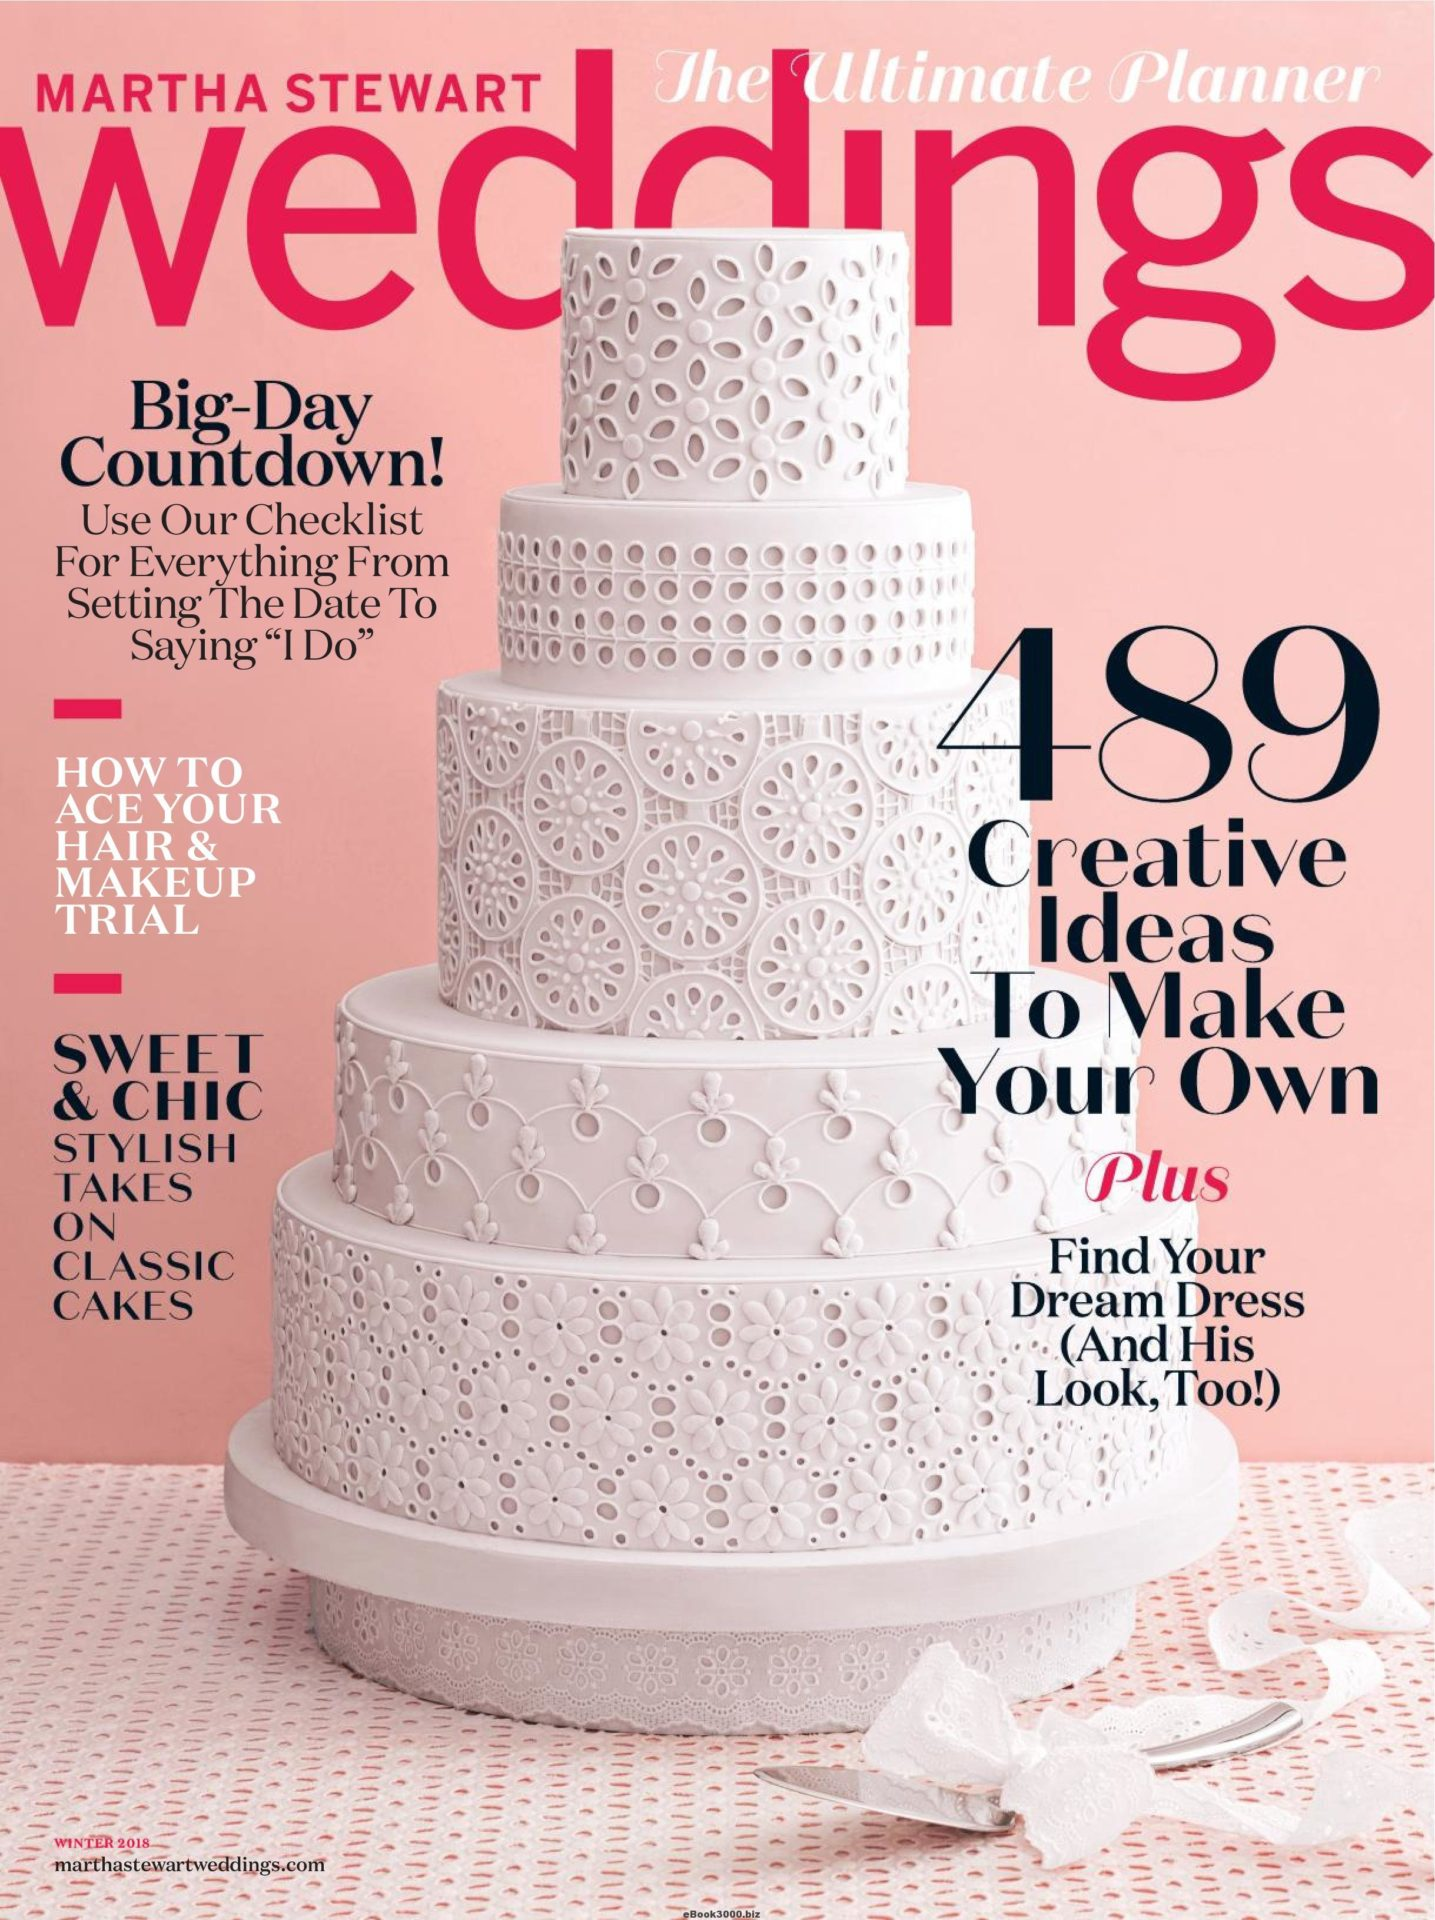 Martha Stewart Weddings<br>Winter 2018